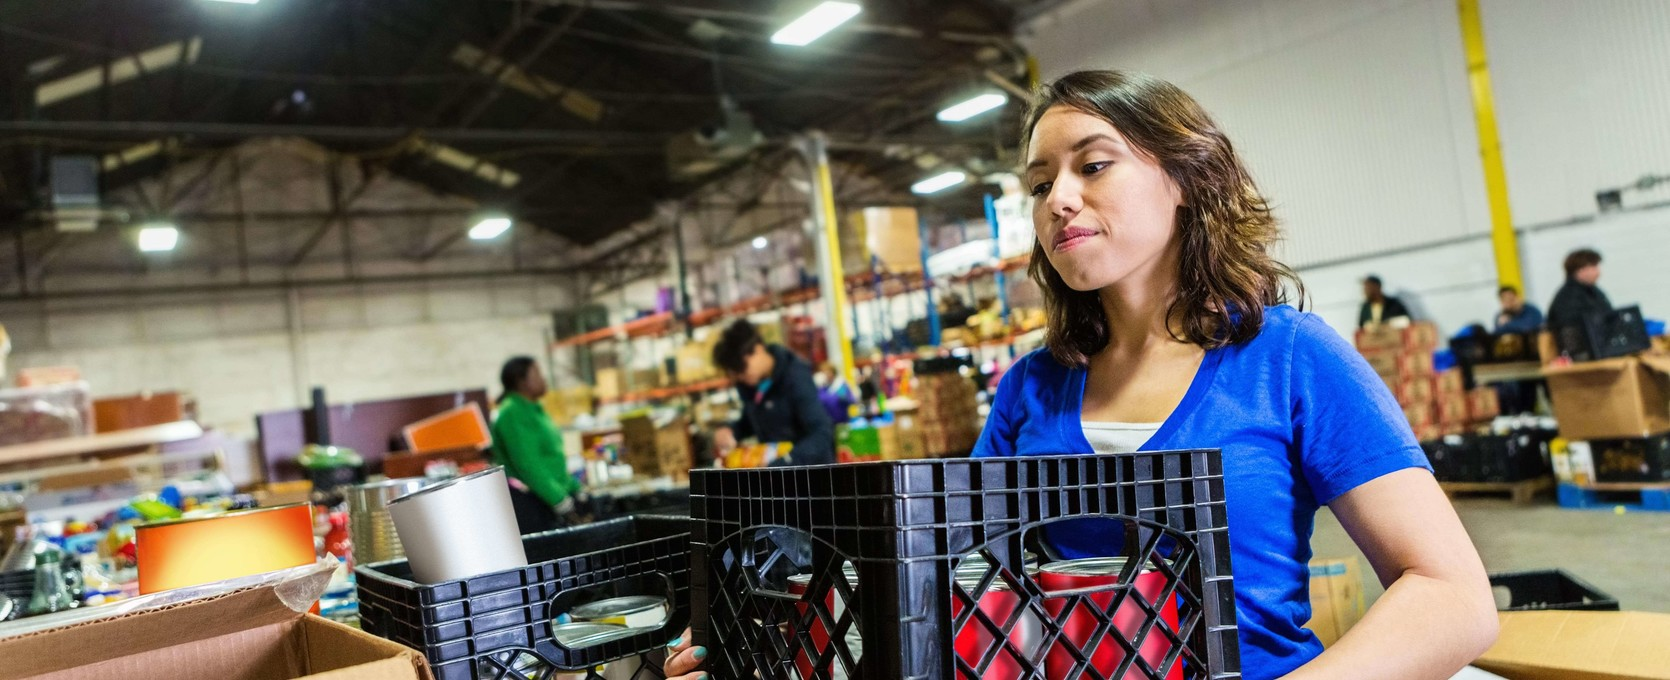 Volunteer for a tax exempt entity prepares food donations